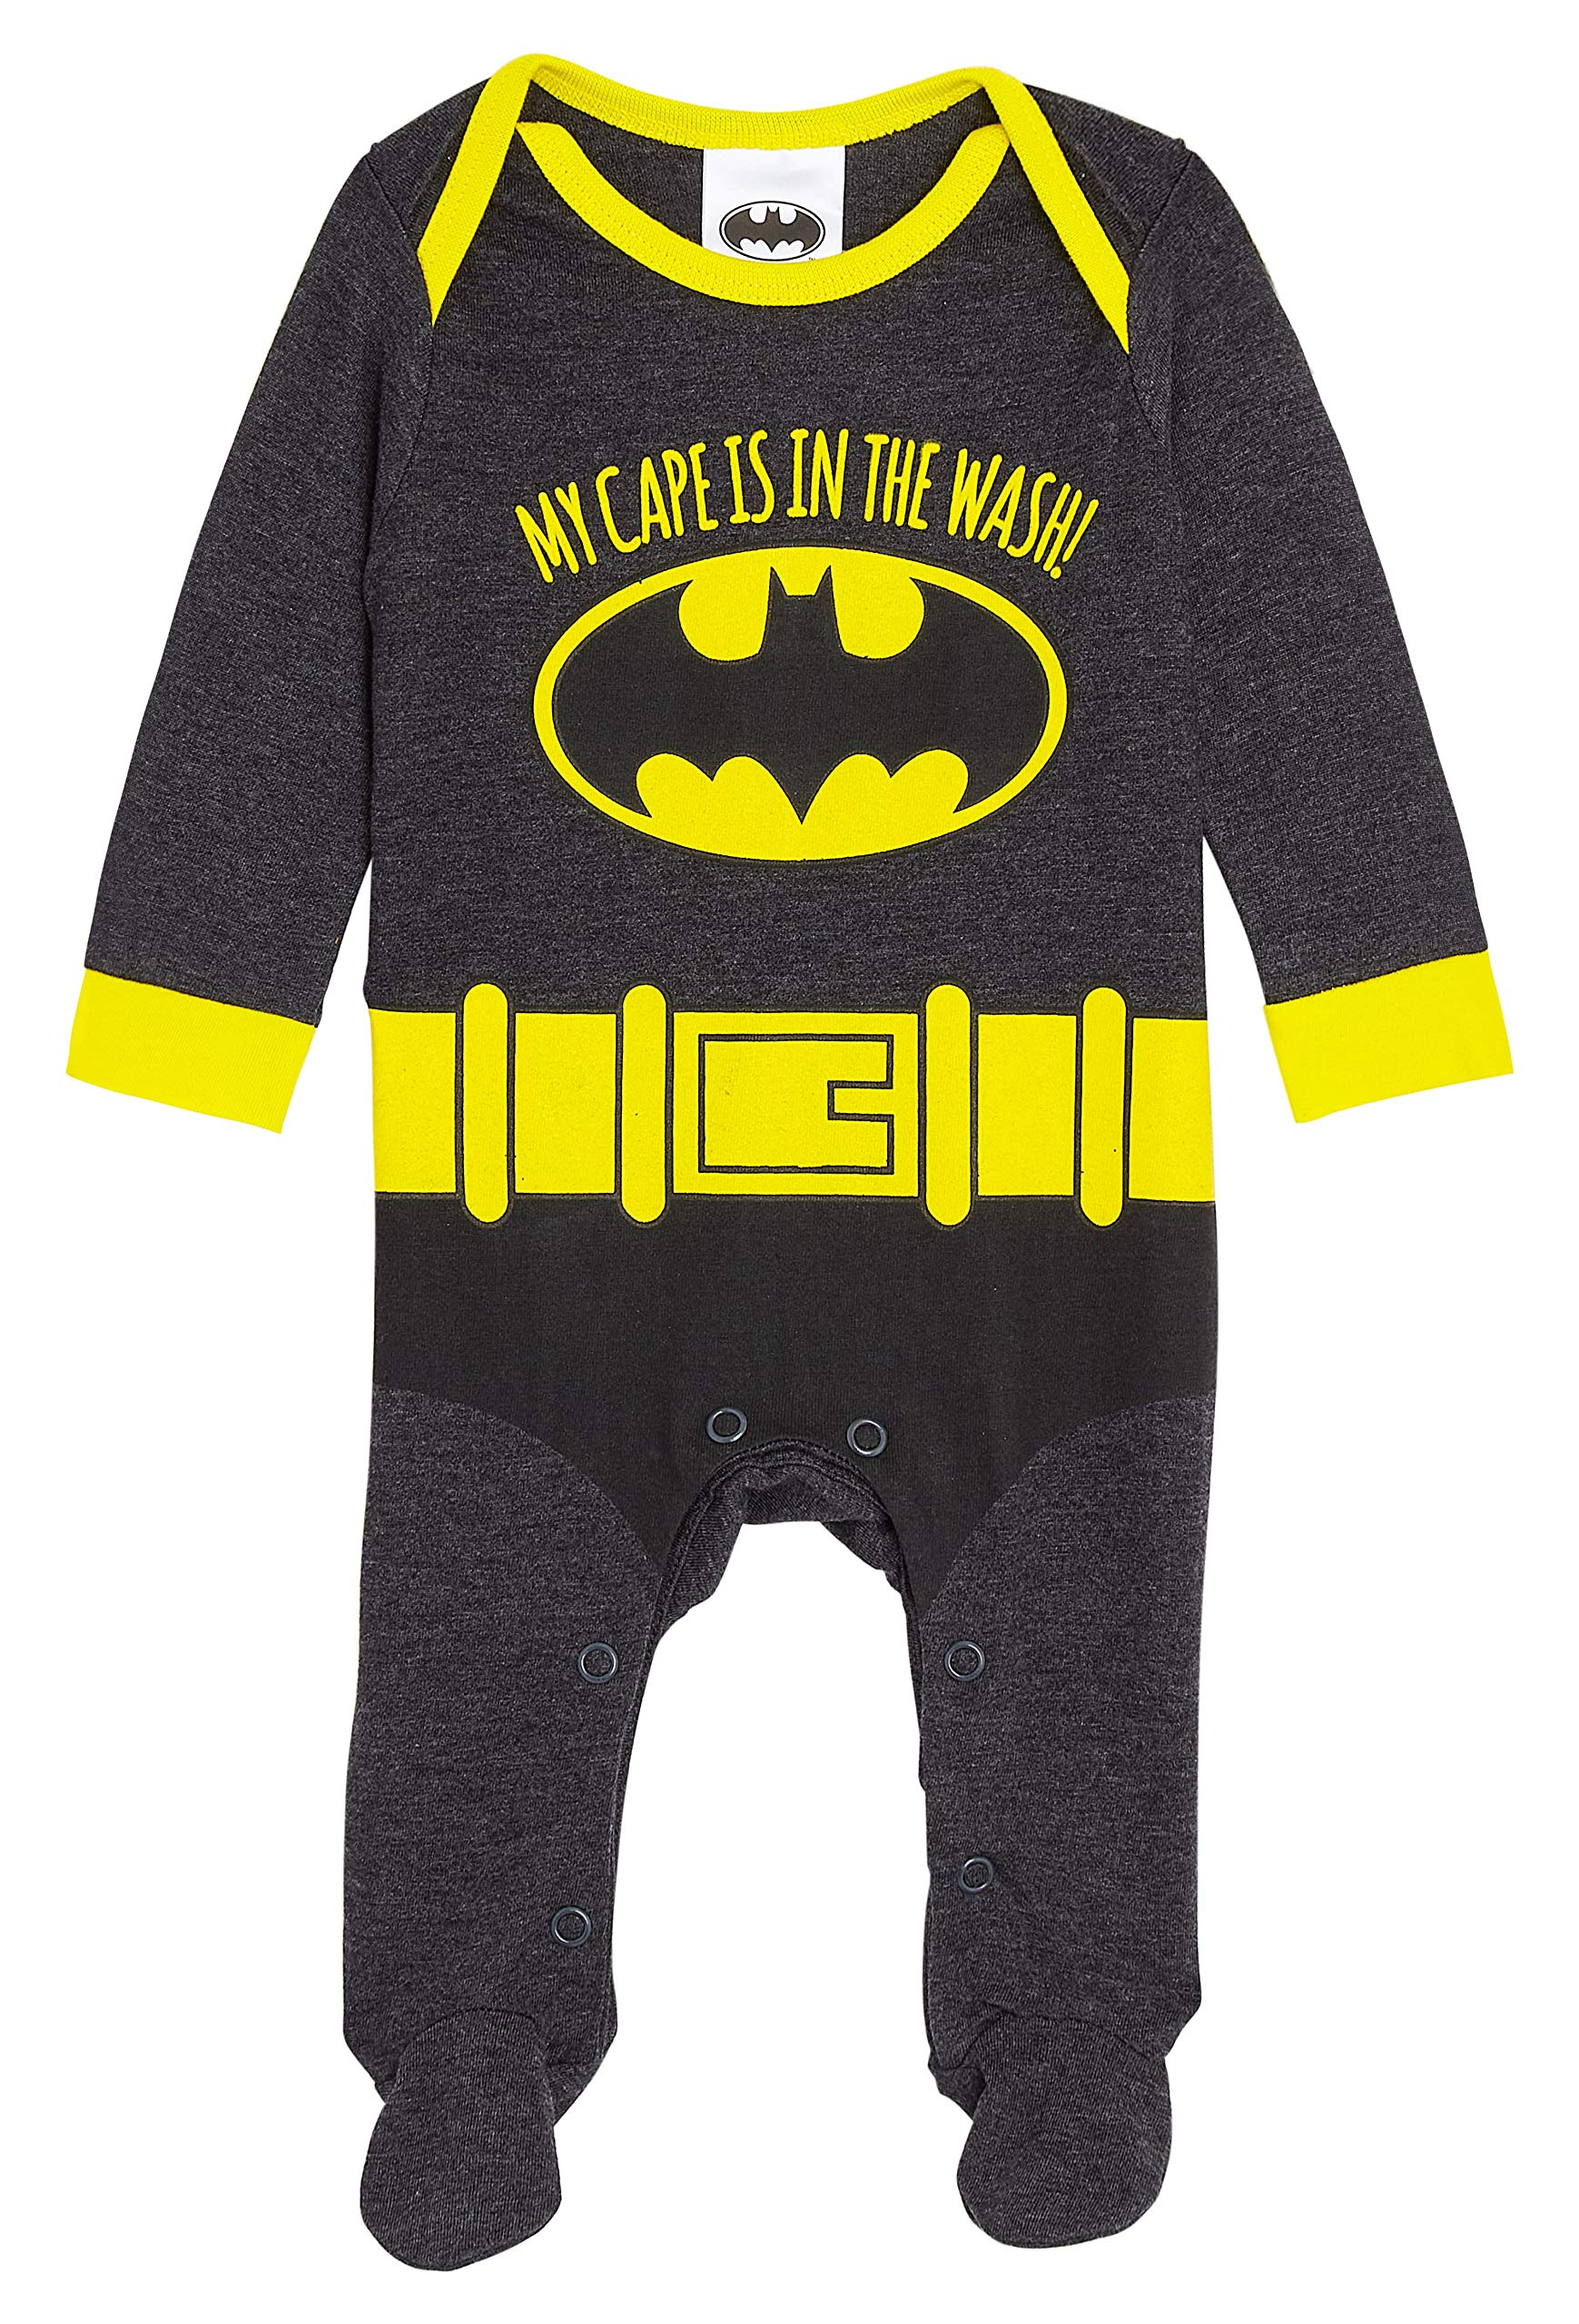 Disney The Incredibles Baby Grows Superhero Costume Boys Pyjamas Baby Gifts from Newborn up to 18 Months 100/% Cotton Baby Clothes Footed Sleepsuit for Baby Boy